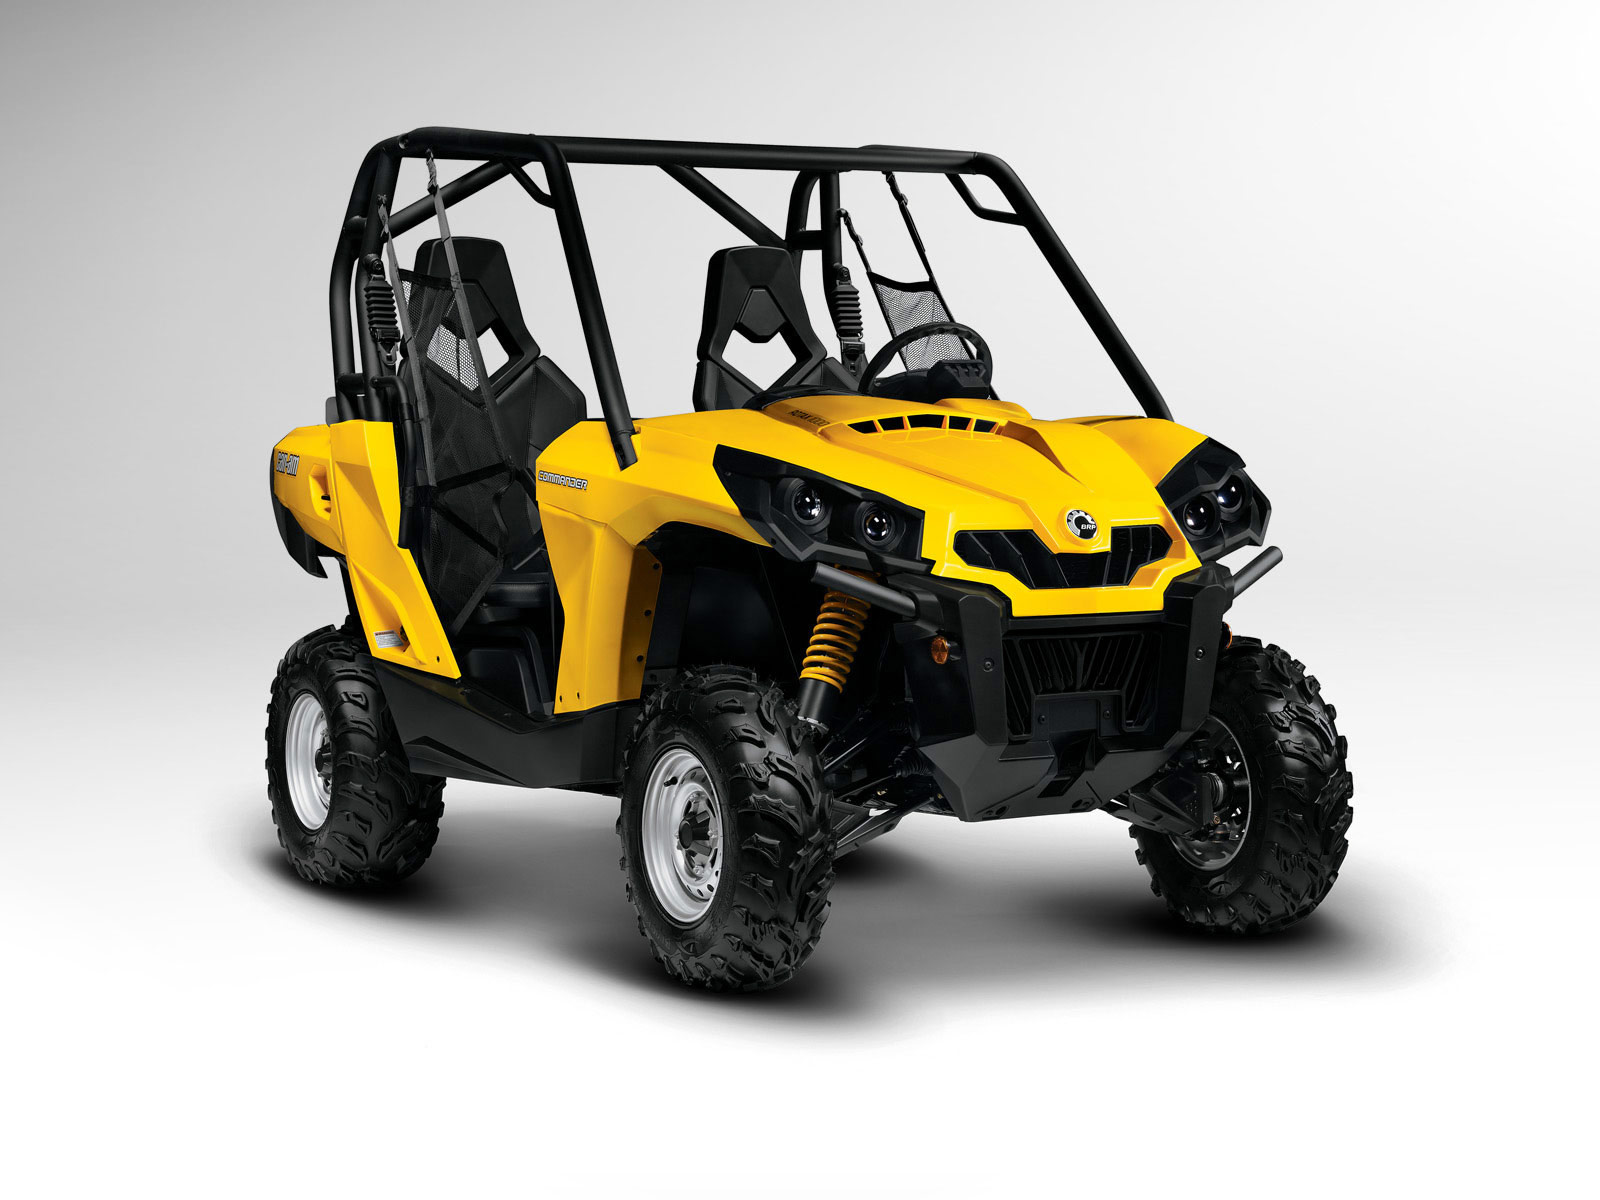 2012 Can-Am Commander 1000 ATV pictures 2